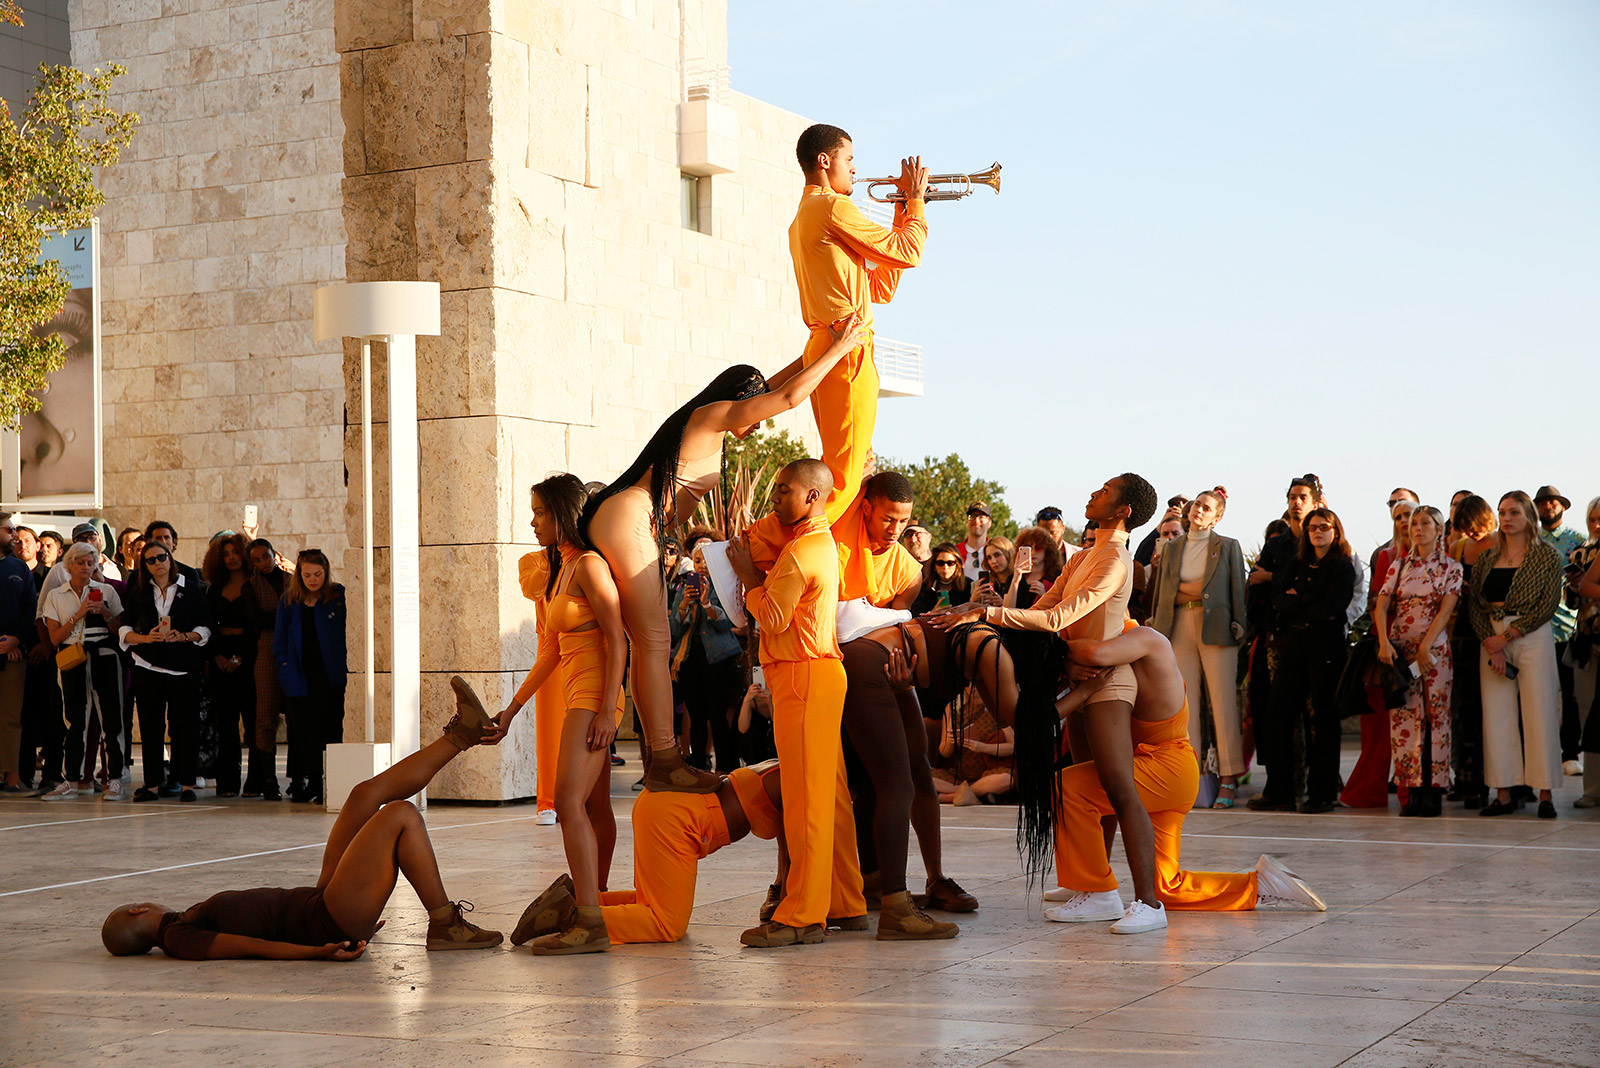 Dancers dressed in orange and brown form a small pyramid, supporting a trumpet player at the top, while a crowd looks on from the back.